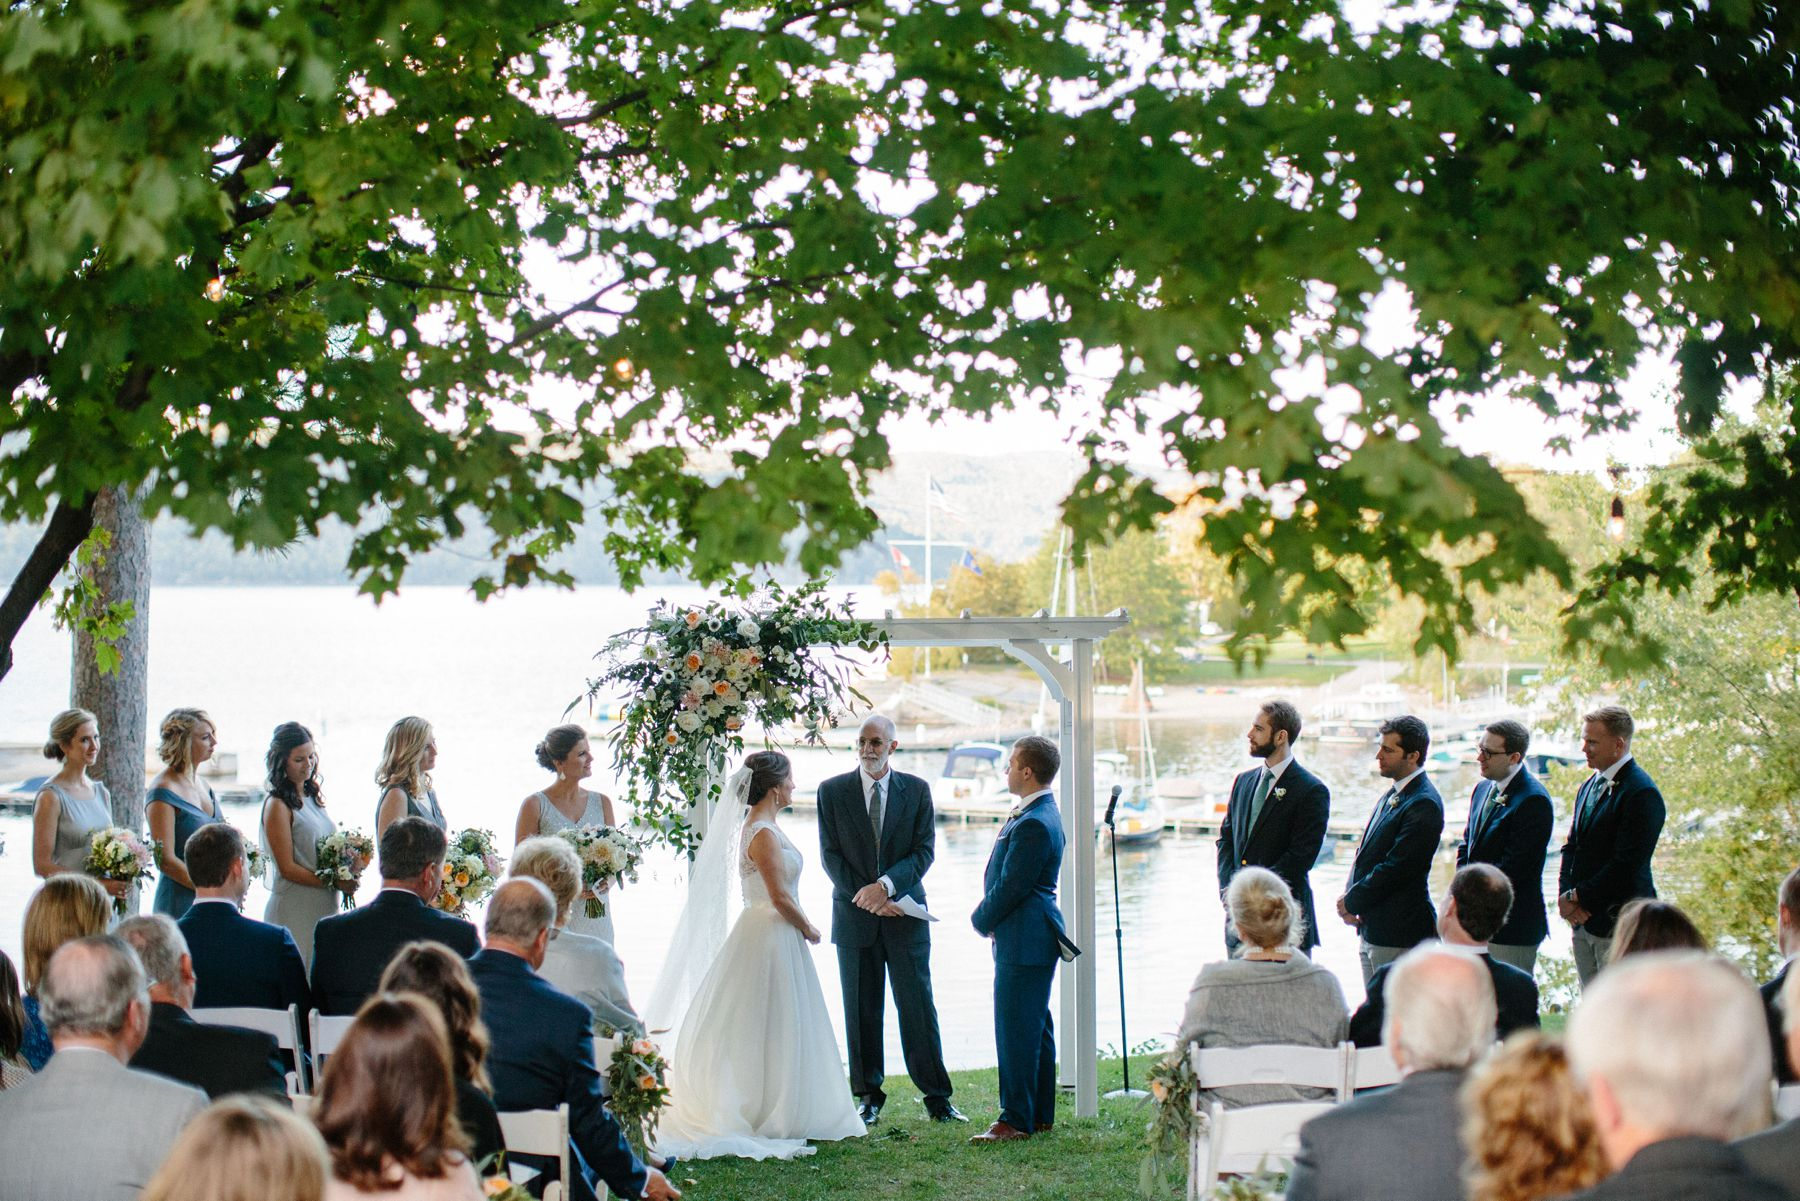 minnesotaweddingphotographer_2625.jpg